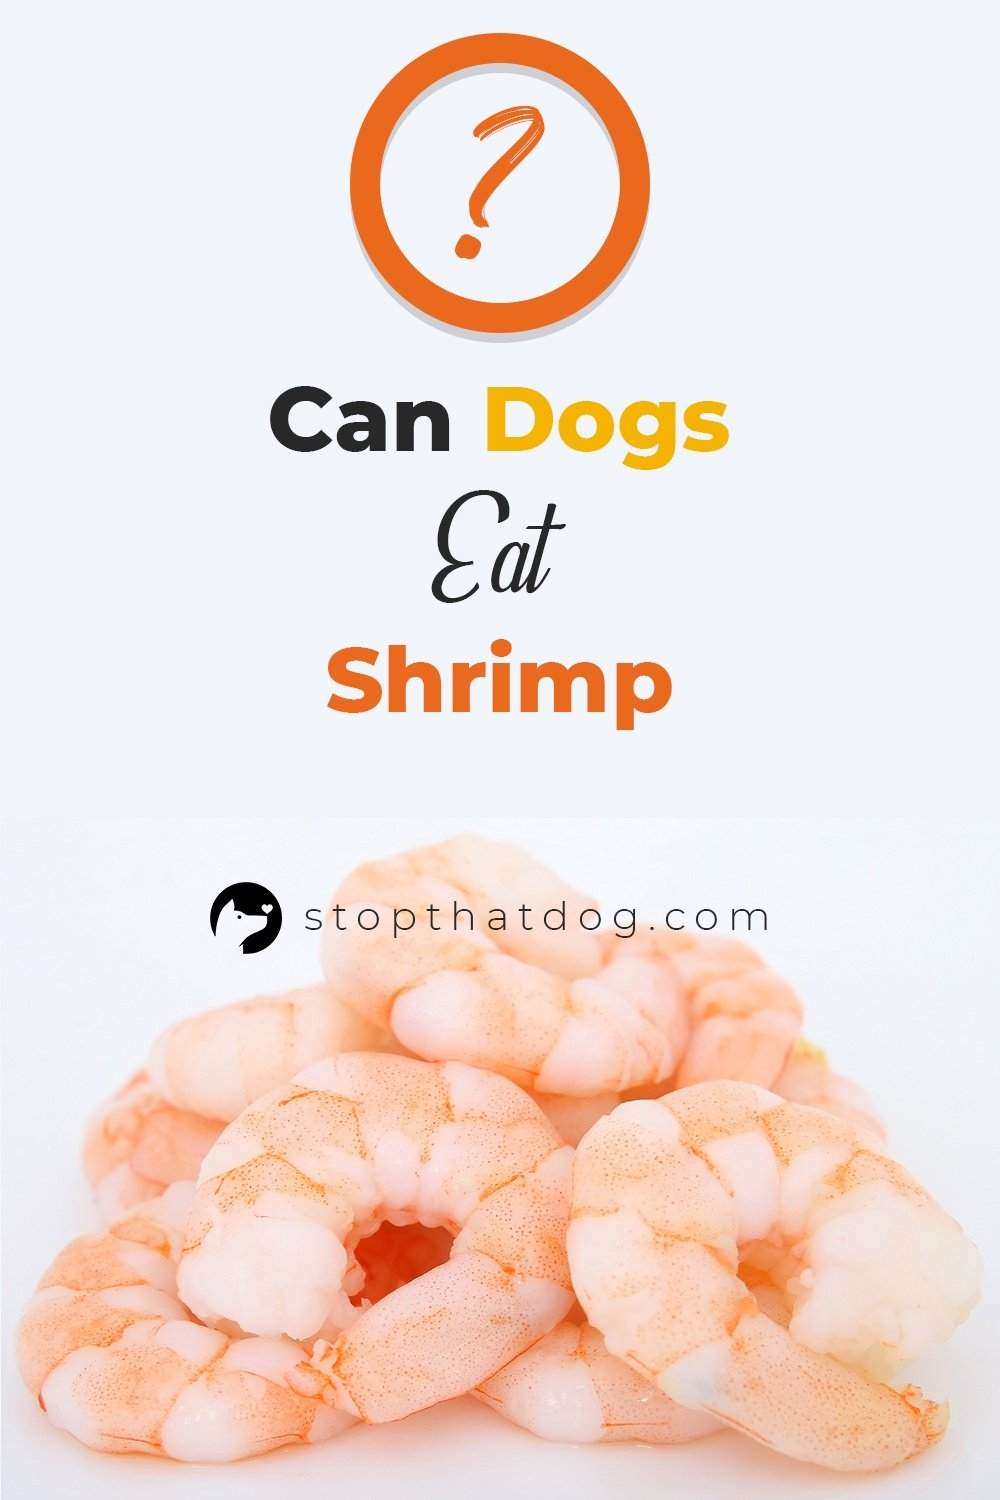 Can Dogs Eat Shrimp?